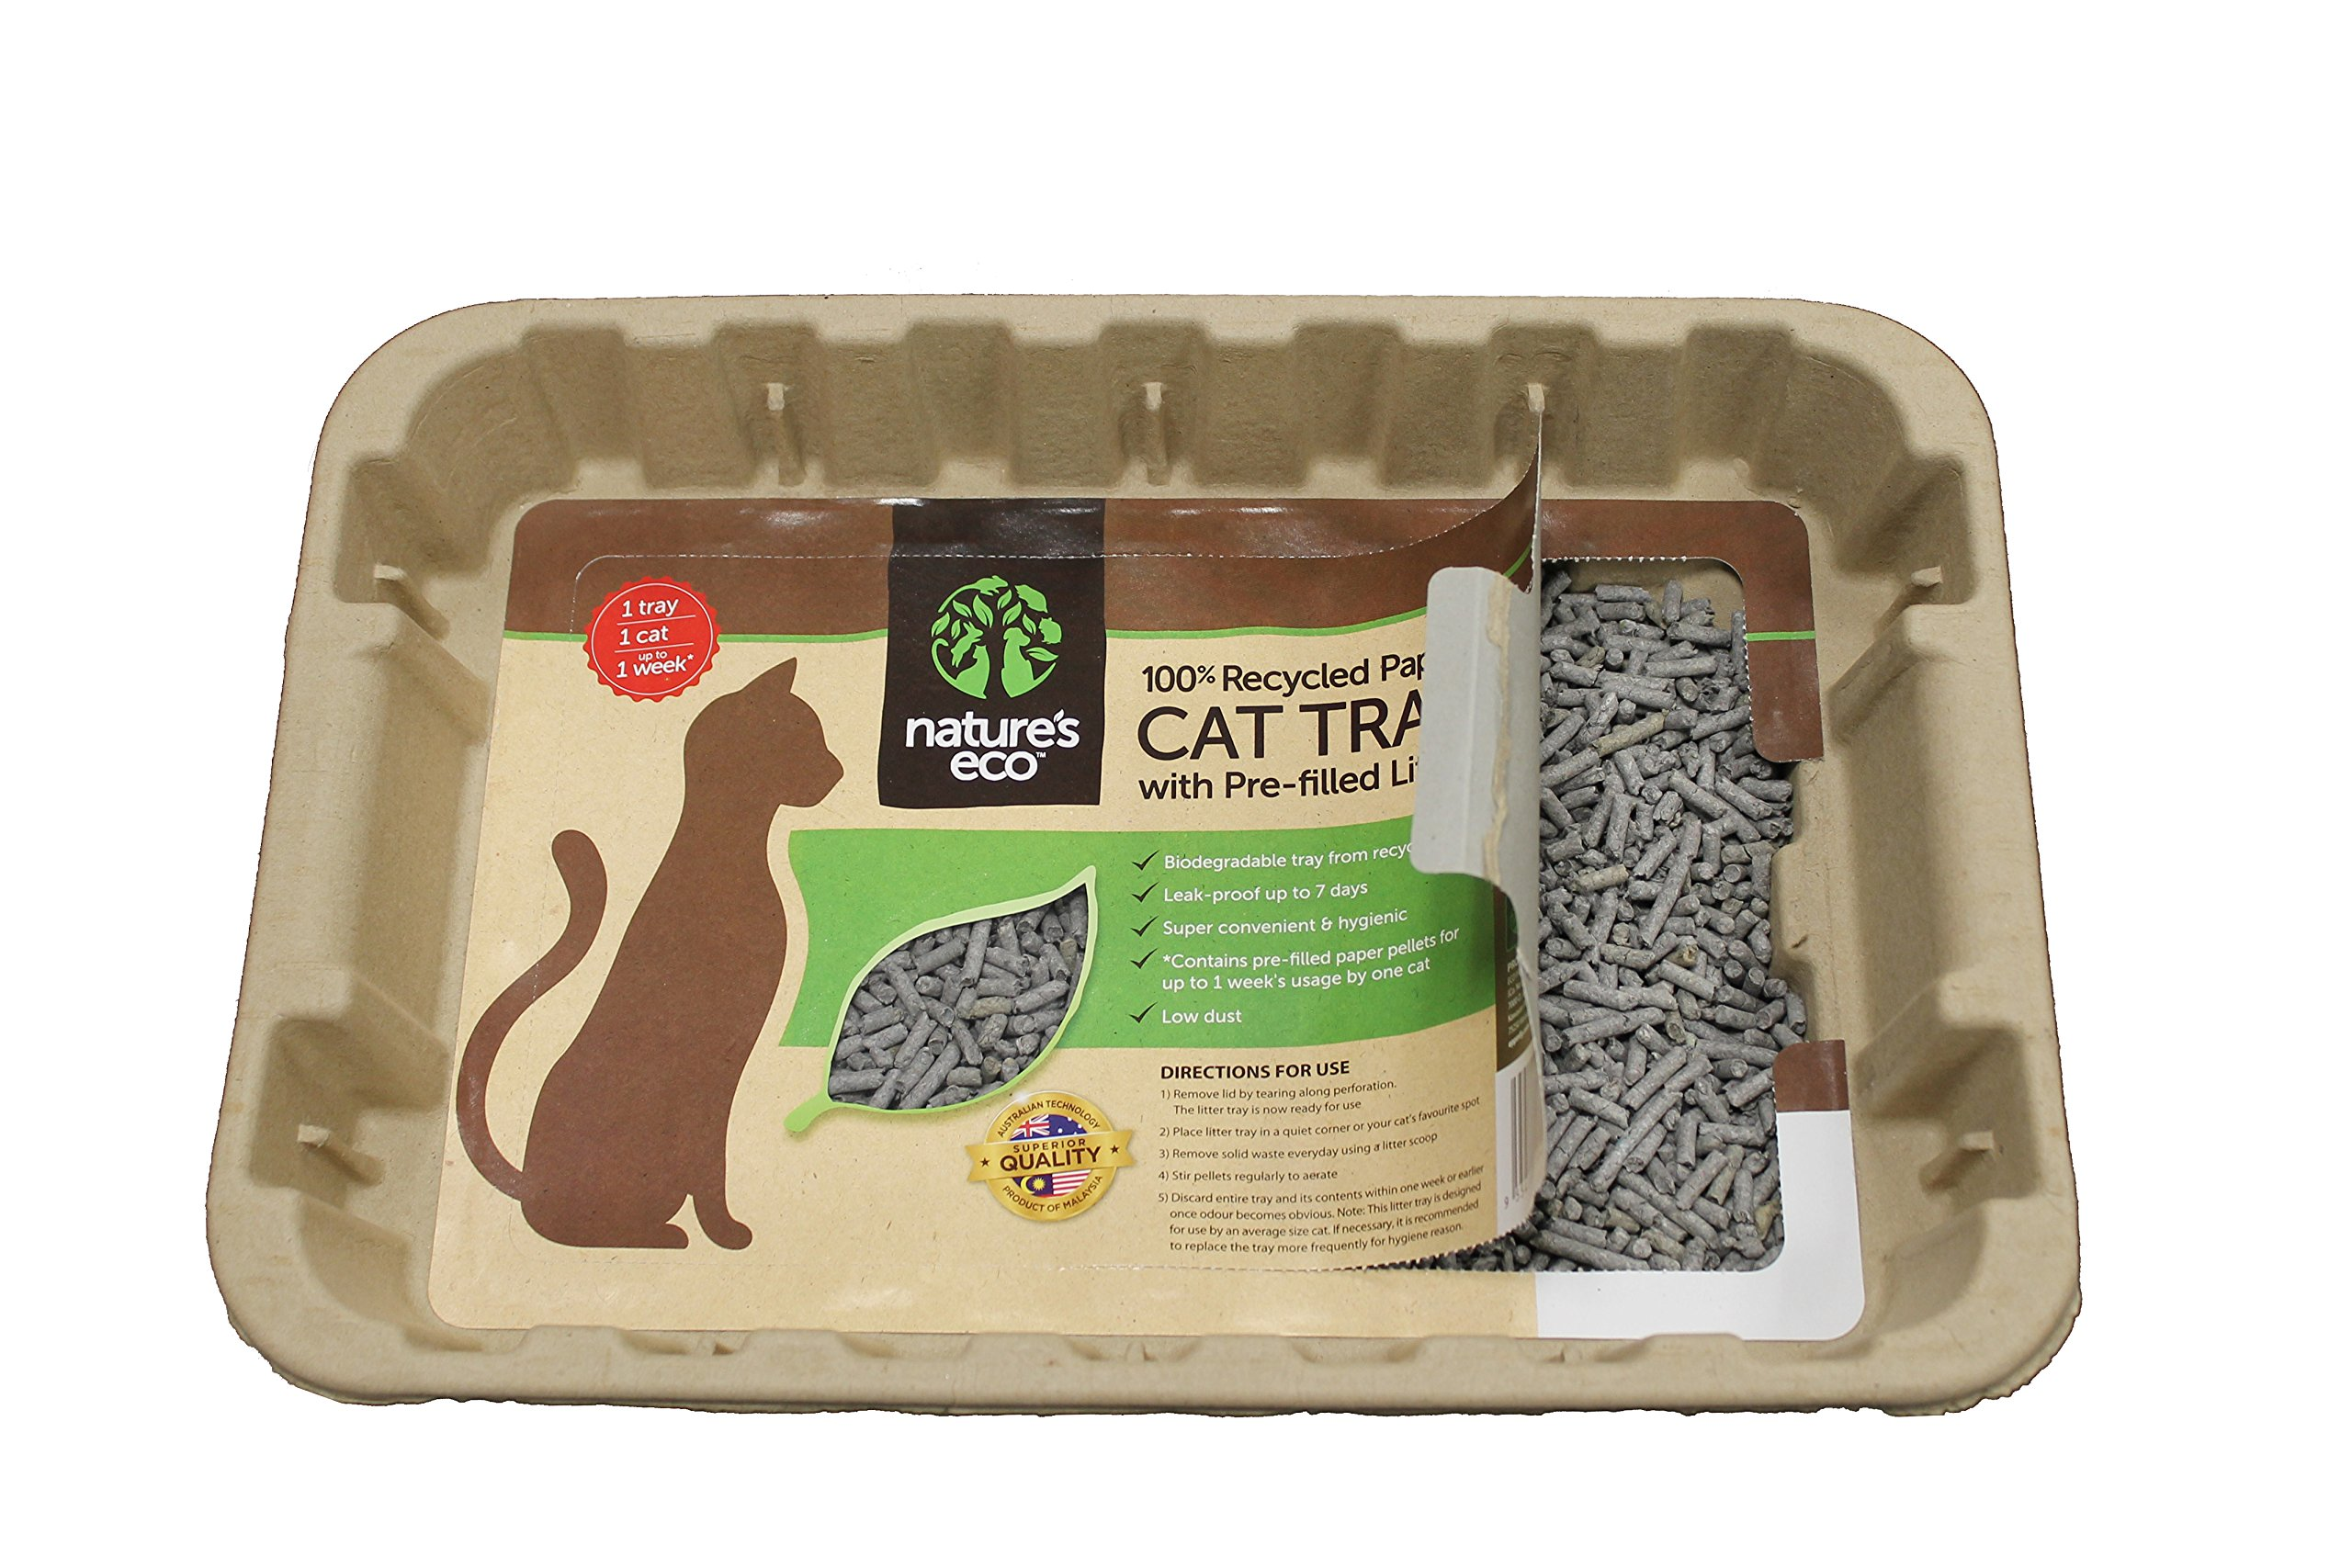 Disposable Cat Litter Boxes, Pre-Filled with 100% Recycled Paper Litter Pellets- 5 Pack of Trays- Includes Litter. Eco Friendly! Simply Peel Off Perforated Lid, Use, Dispose of Entire Tray! 2